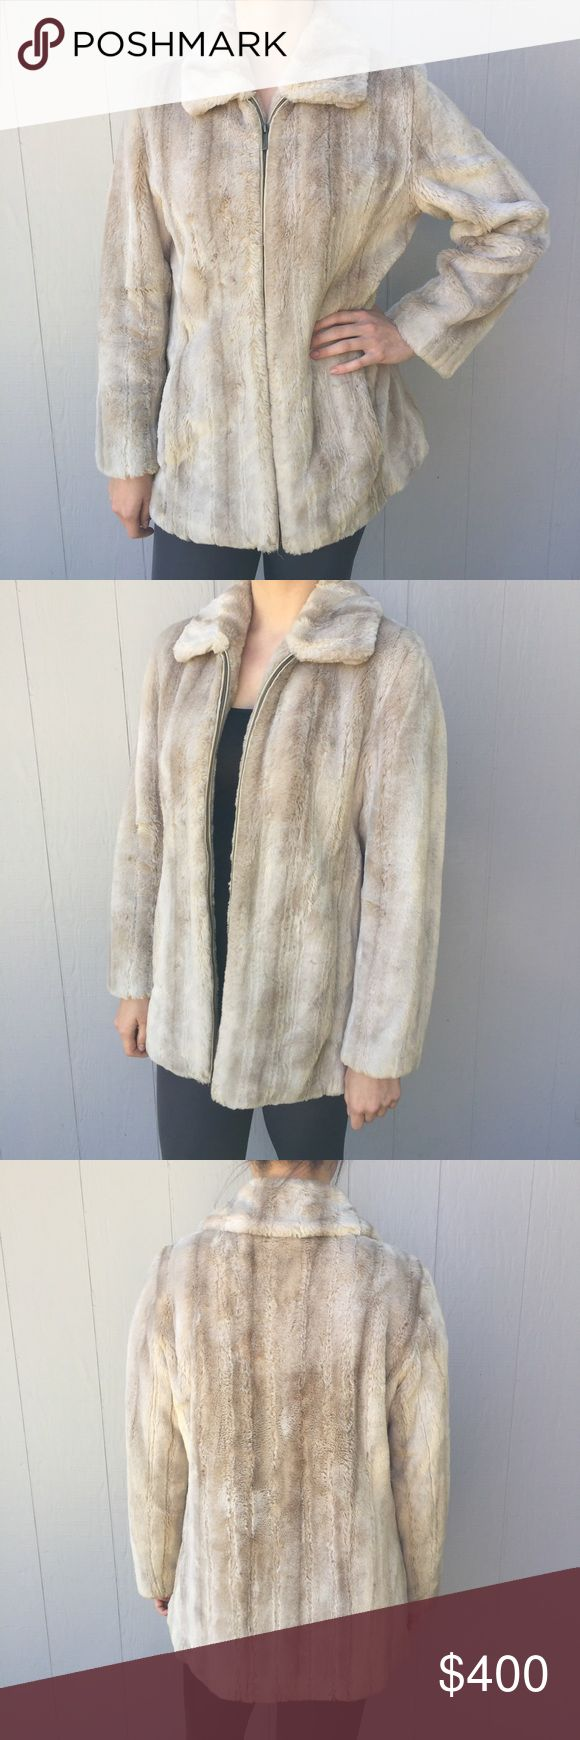 NEW Kristen Blake Fur coat for sale. NEW Fur coat. Size medium but can also fit a size small person. Can fit someone who wears 6-10 sizes. Pocket on the inside. Let me know if you have an offer :) Kristen Blake Jackets & Coats